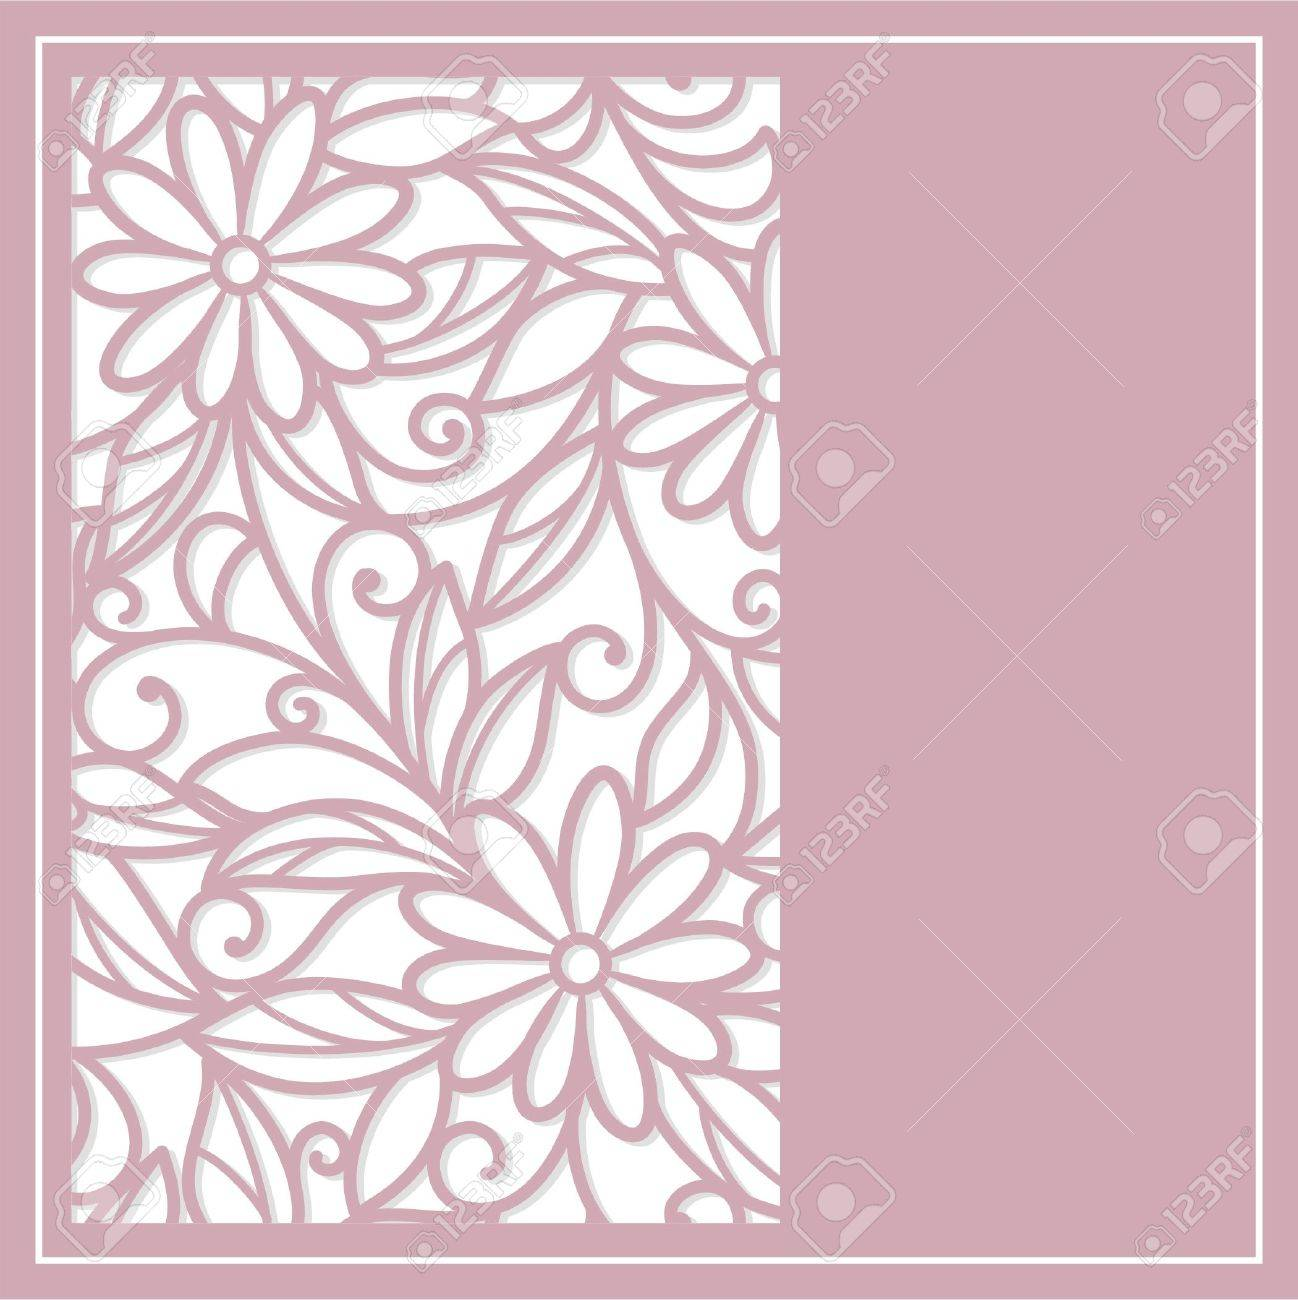 Template  frame  design for greeting card Stock Vector - 17451304